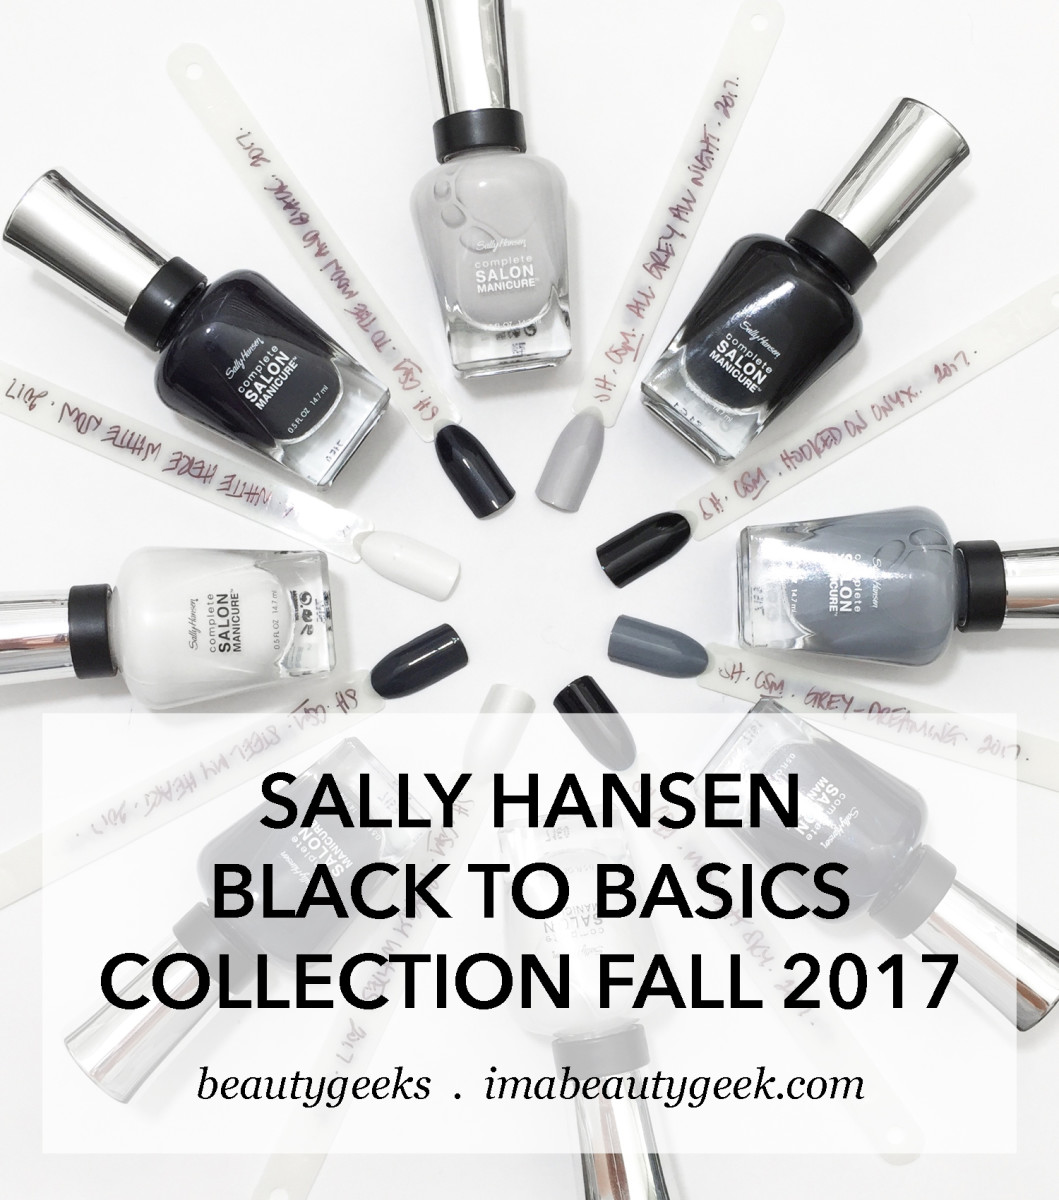 Sally Hansen Black to Basics Collection Swatches Fall 2017-BEAUTYGEEKS